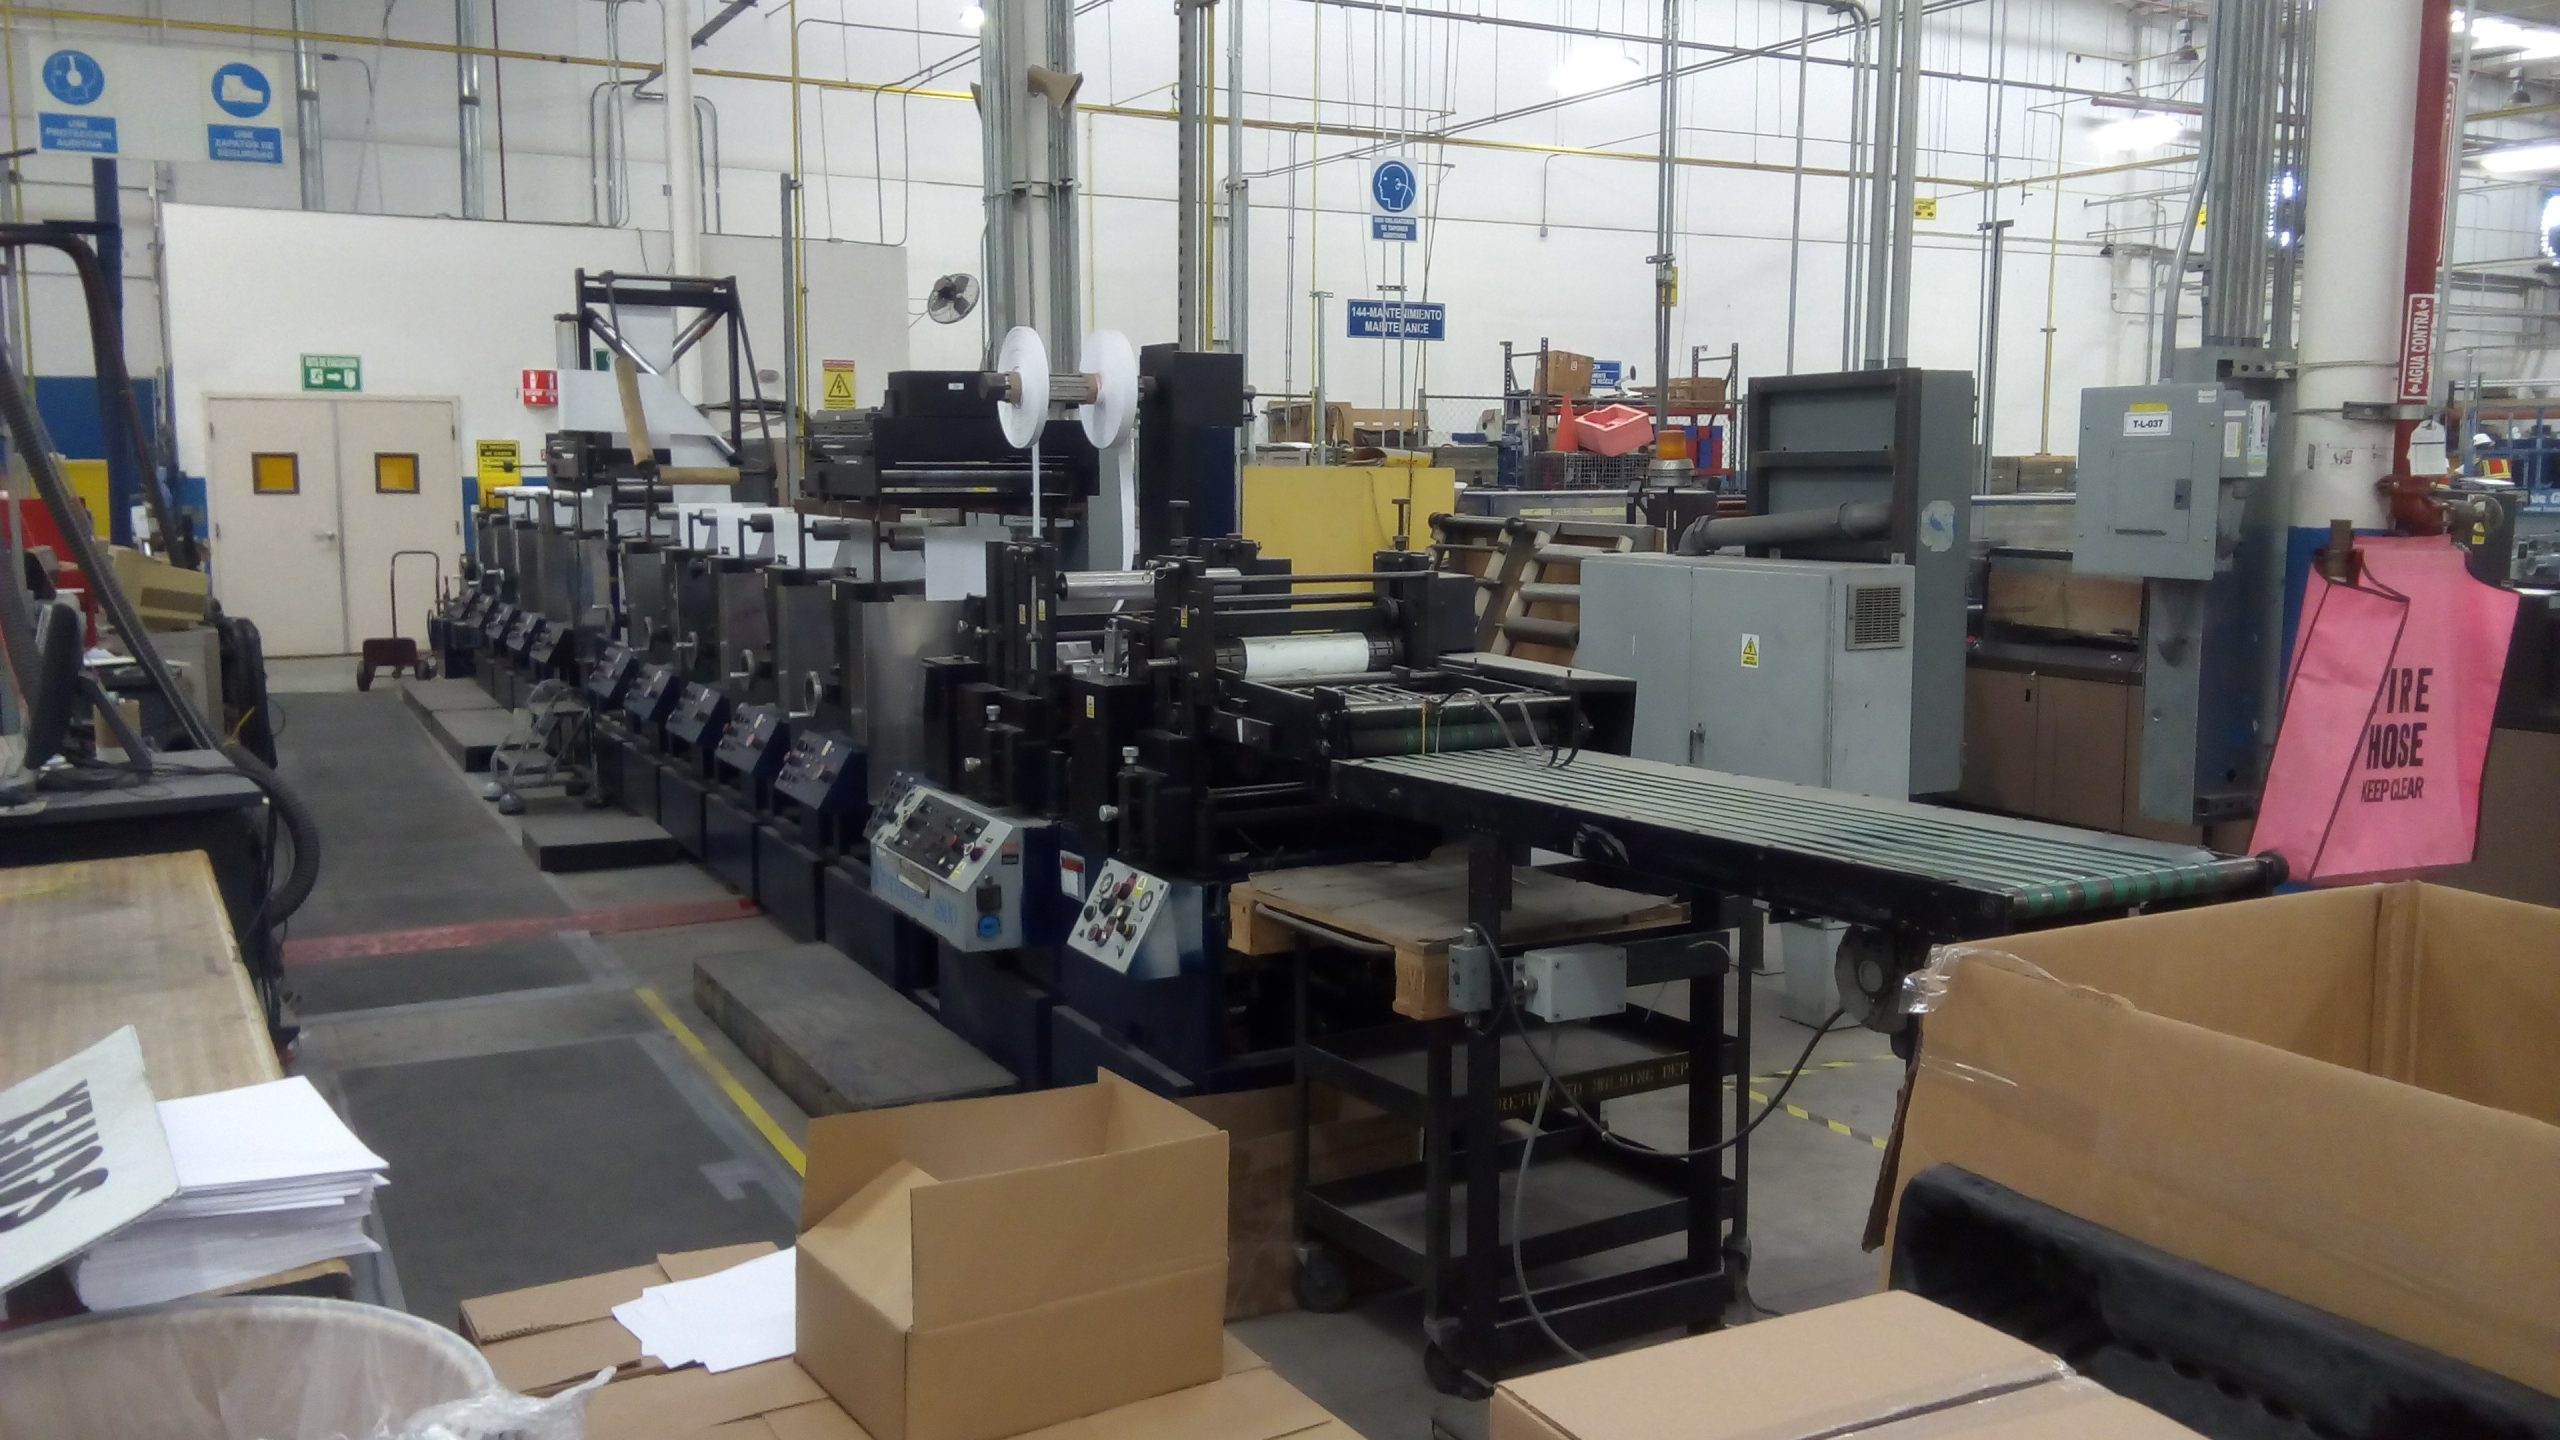 Propheteer 1800 - Used Flexo Printing Presses and Used Flexographic Equipment-2